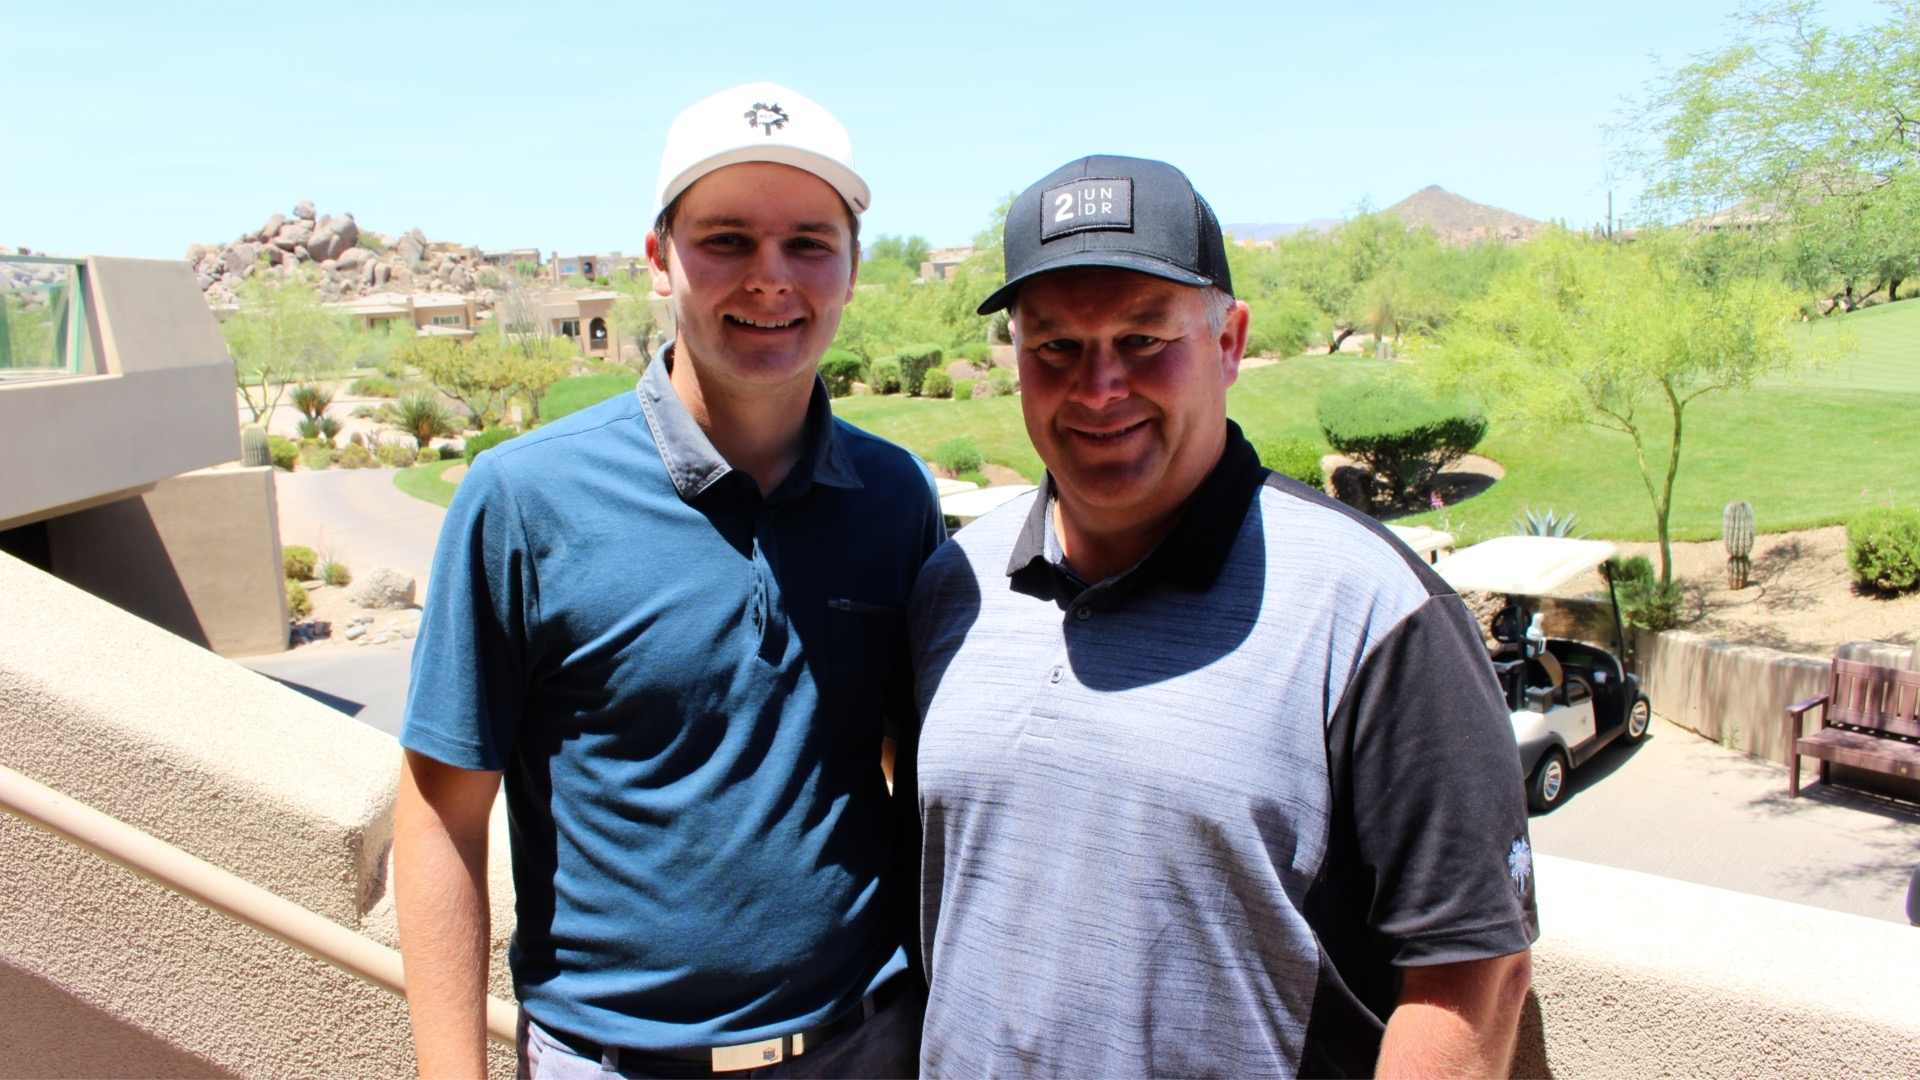 Father and Son Compete Against One Another at Sizzler Amateur